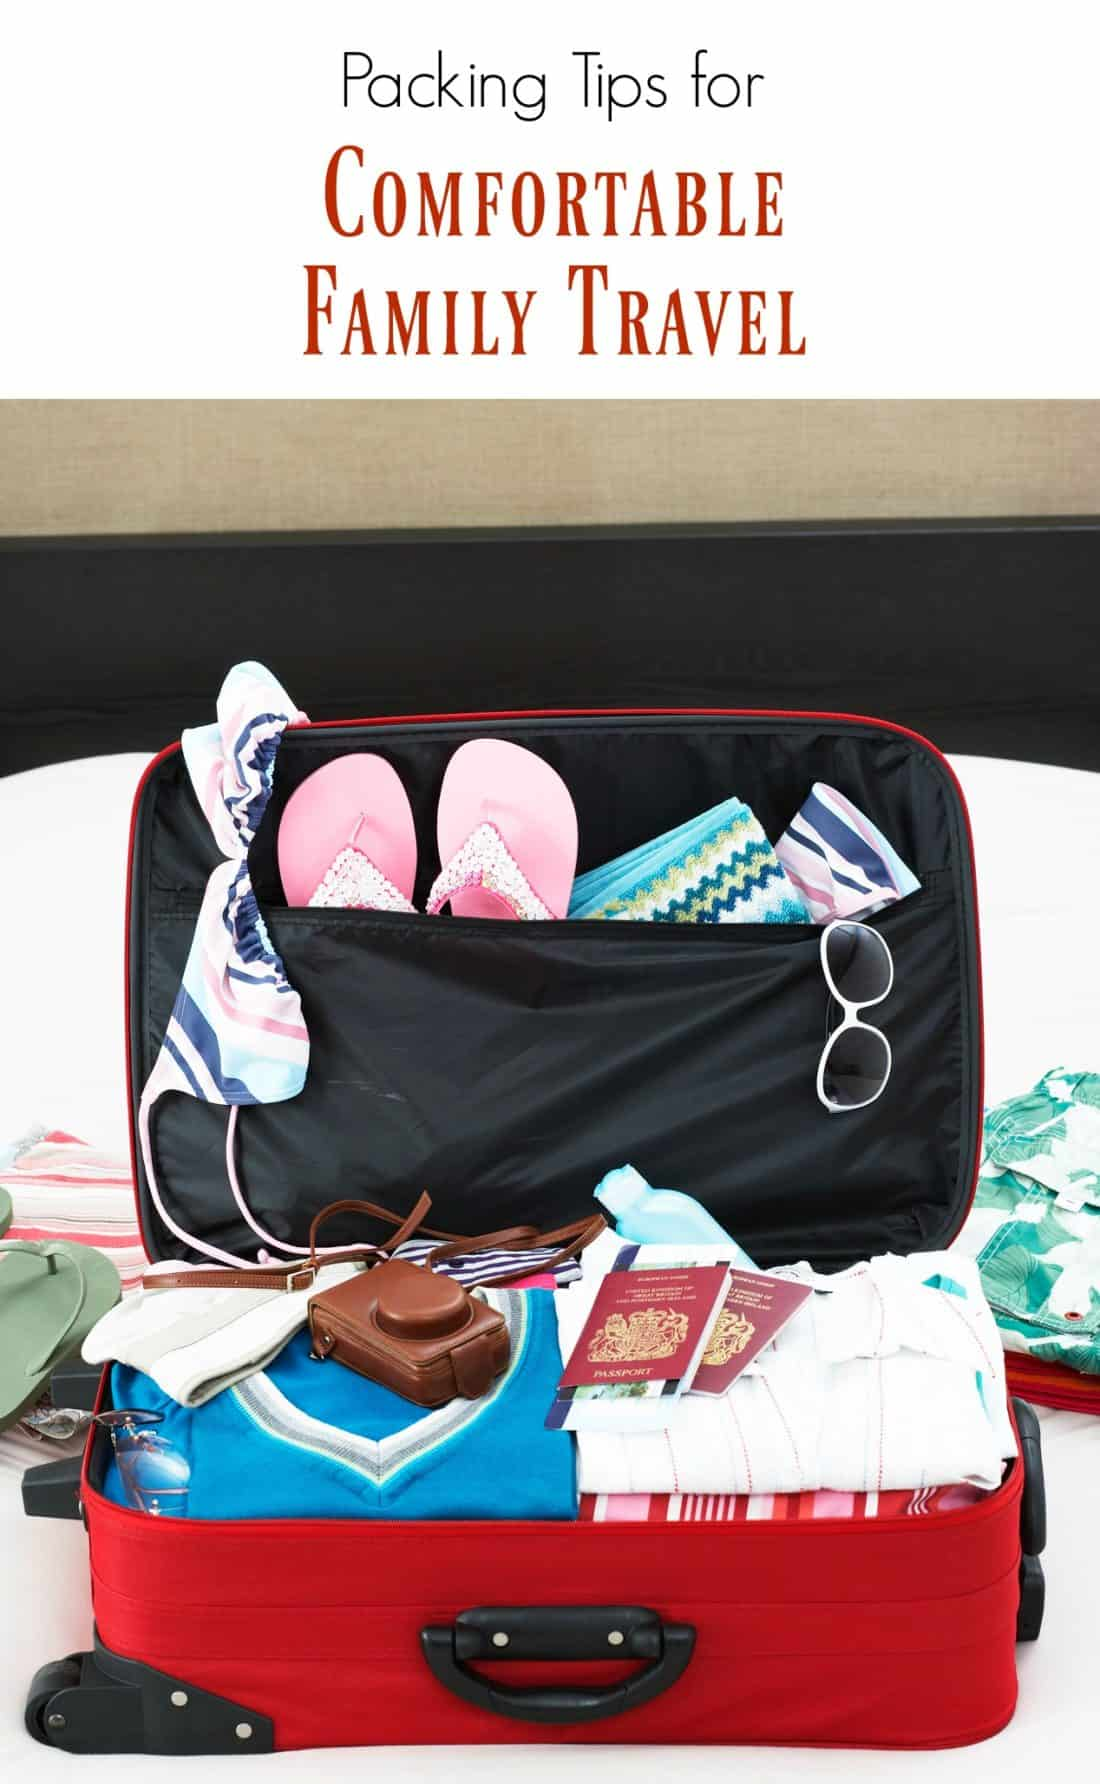 Packing tips for comfortable family travel